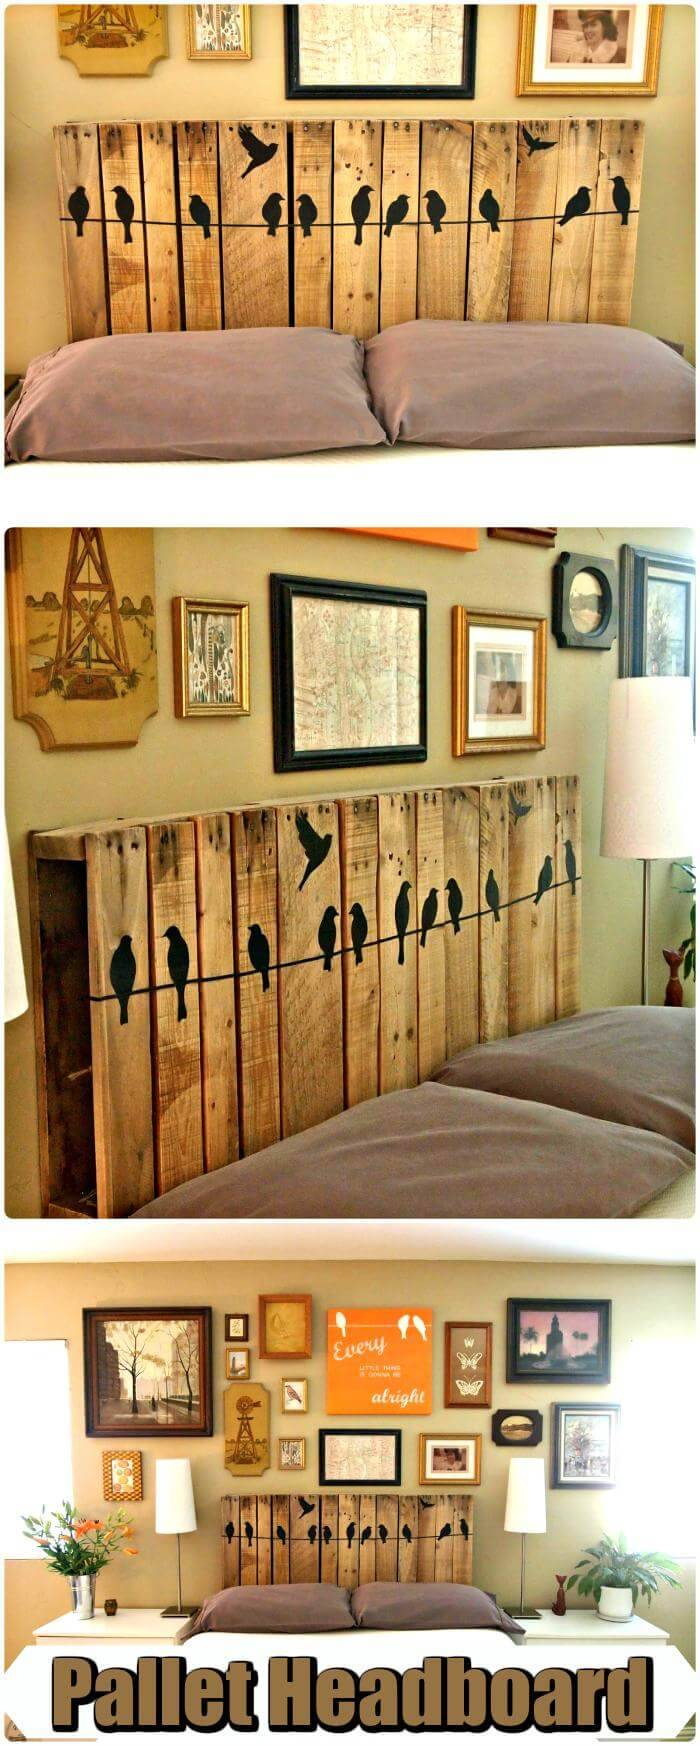 DIY Wooden Pallet Headboard